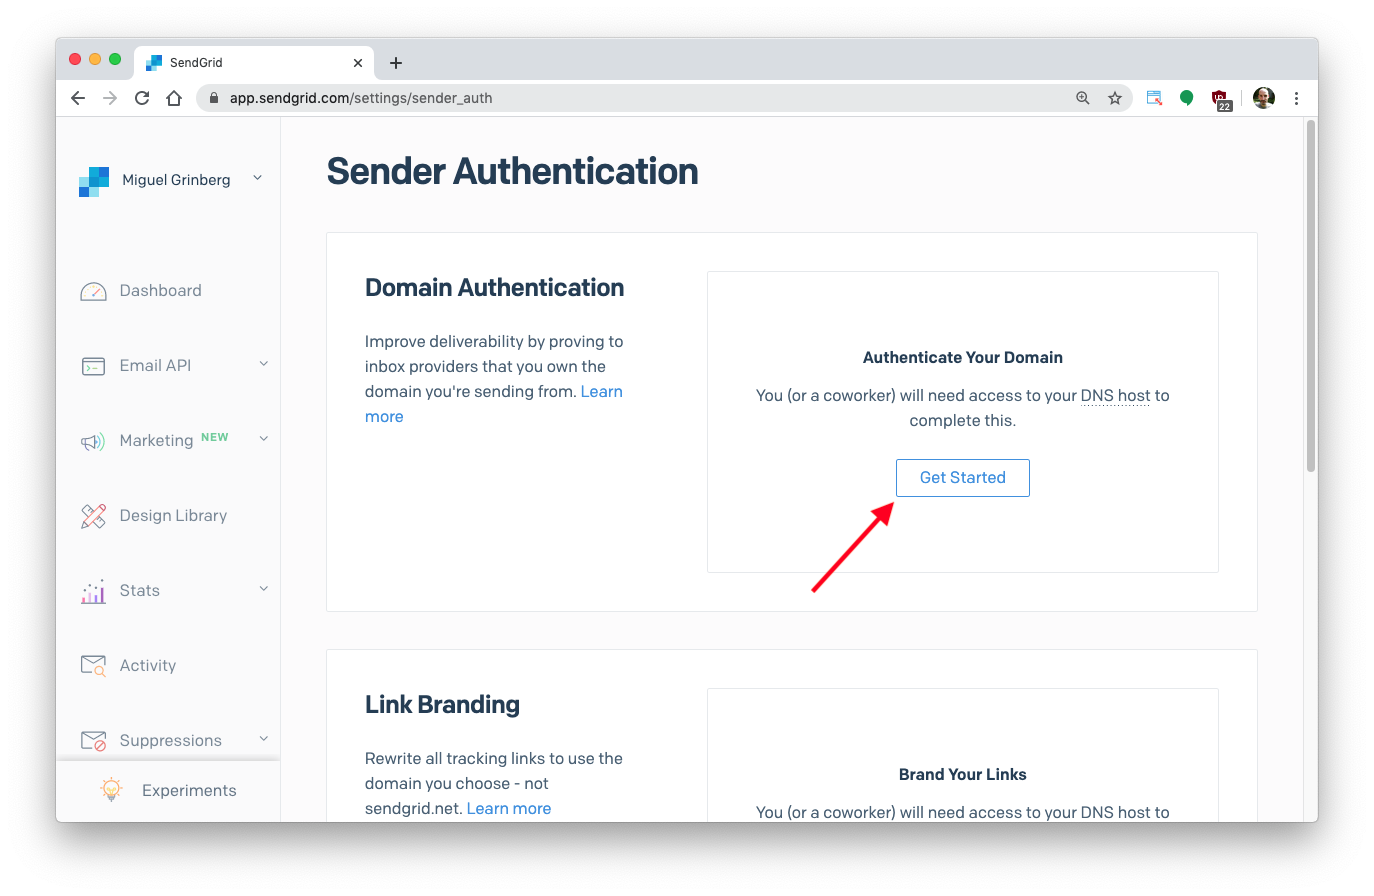 sender authentication page